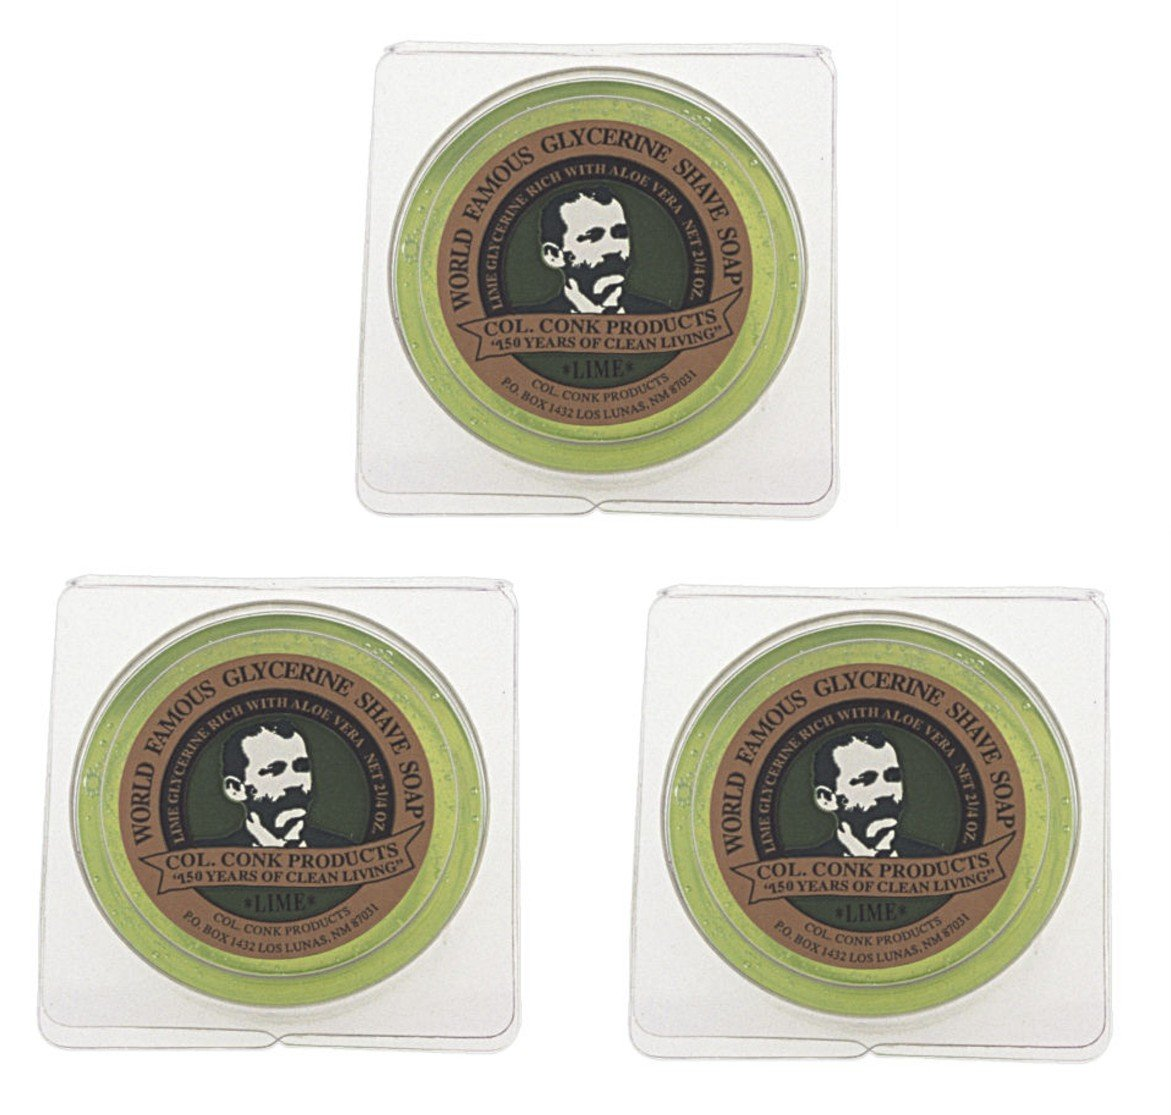 Col. Conk World's Famous Shaving Sales results No. 1 Soap Lime Pack 3 Max 88% OFF pi Each --